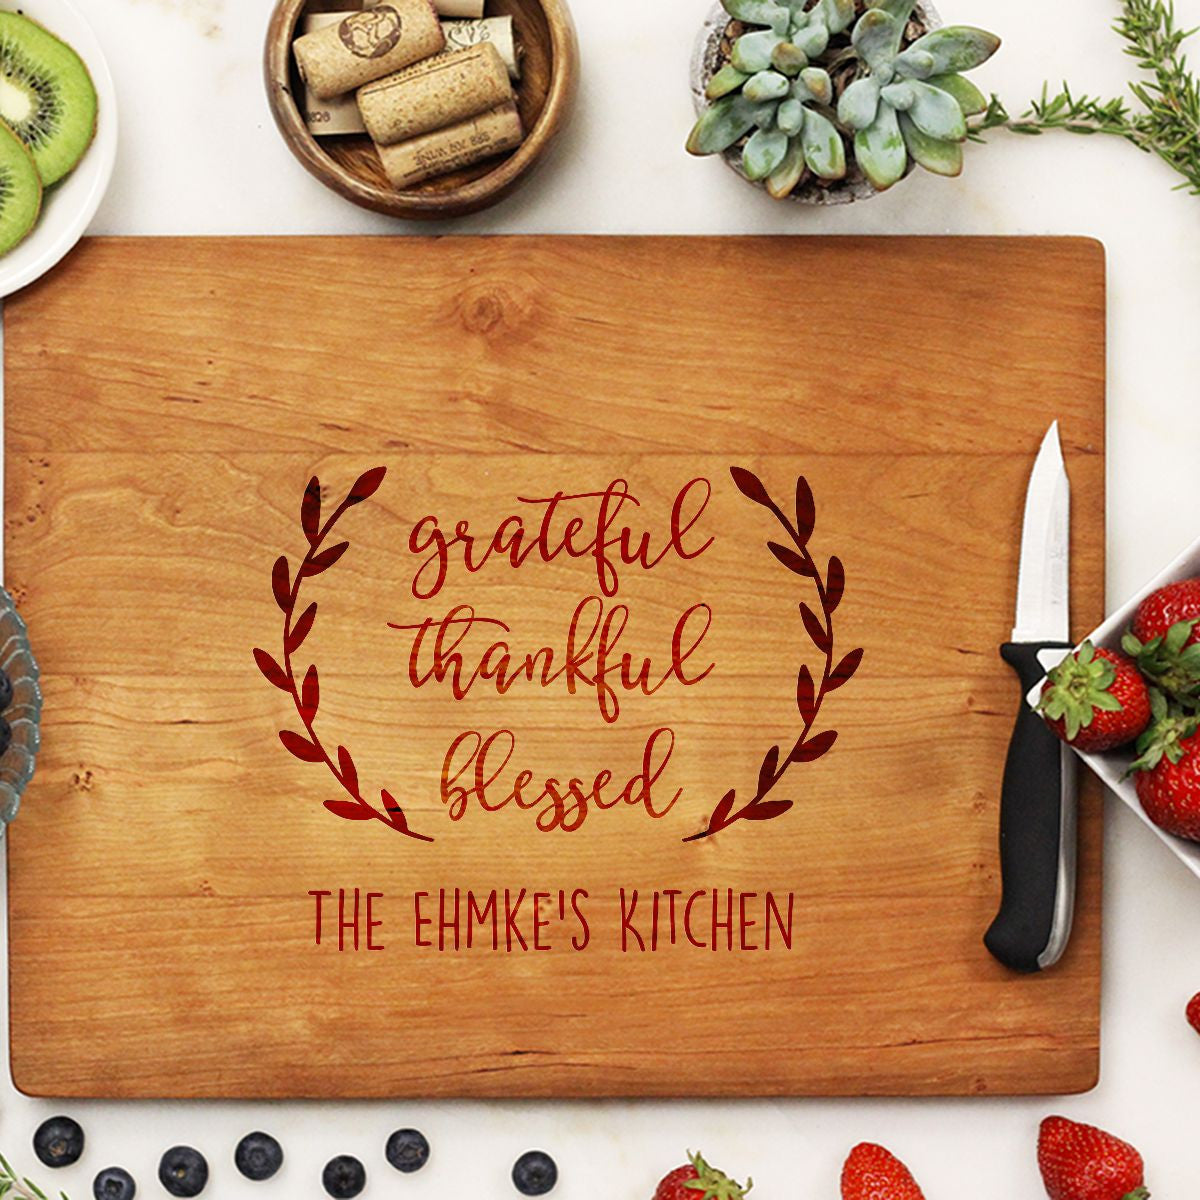 Cutting Board Grateful Thankful Blessed Stamp Out